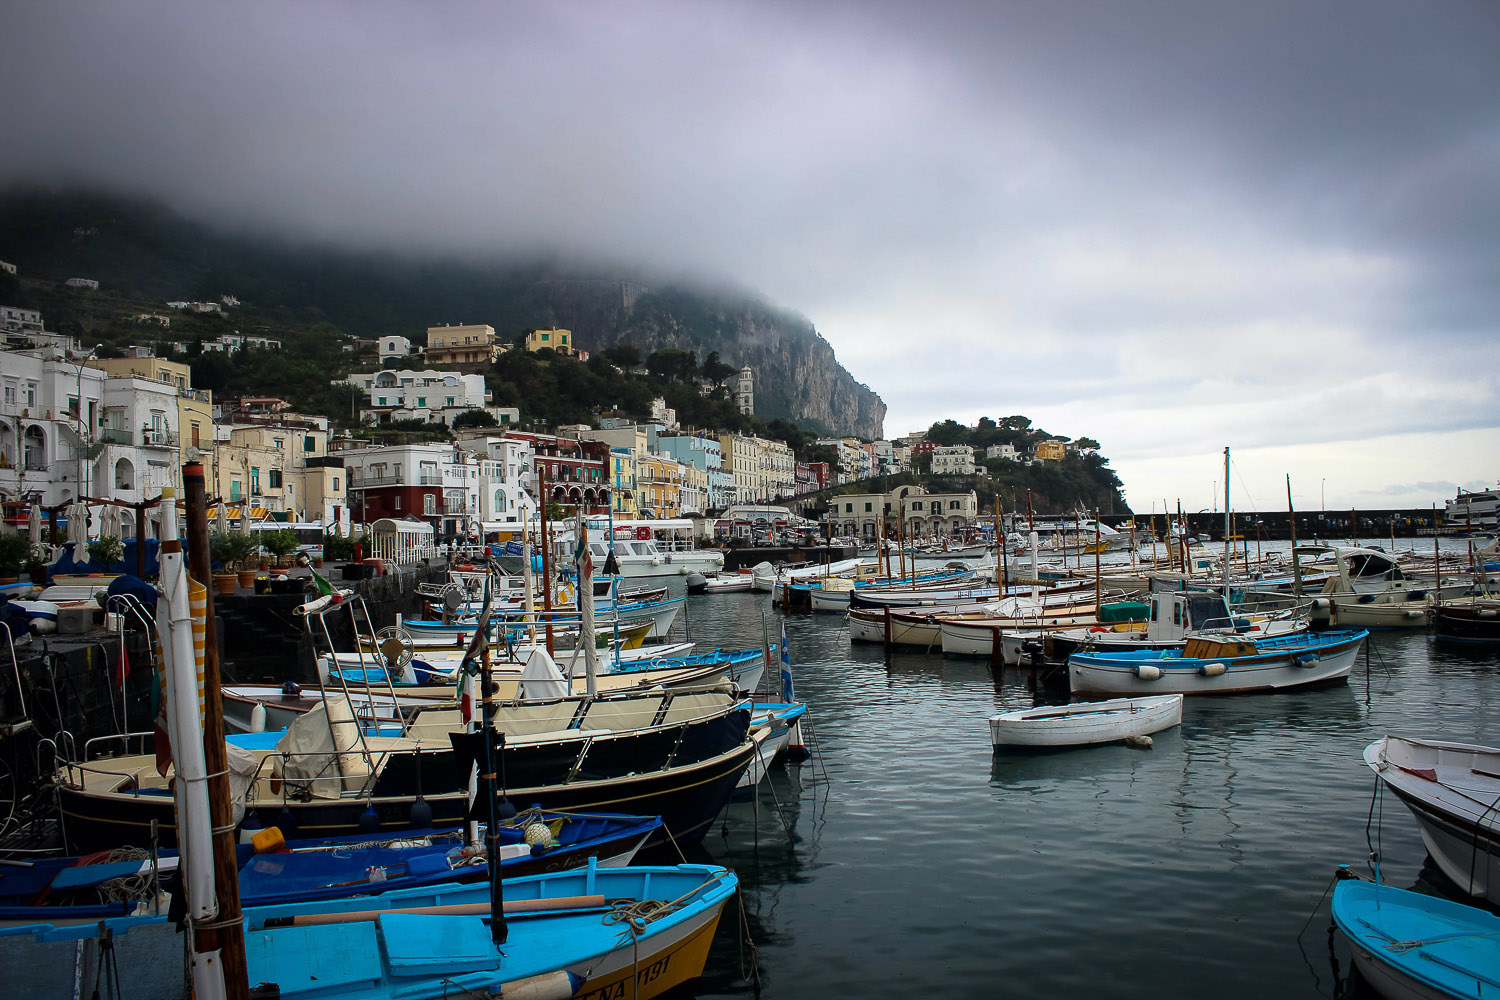 Boats in bay on stormy day